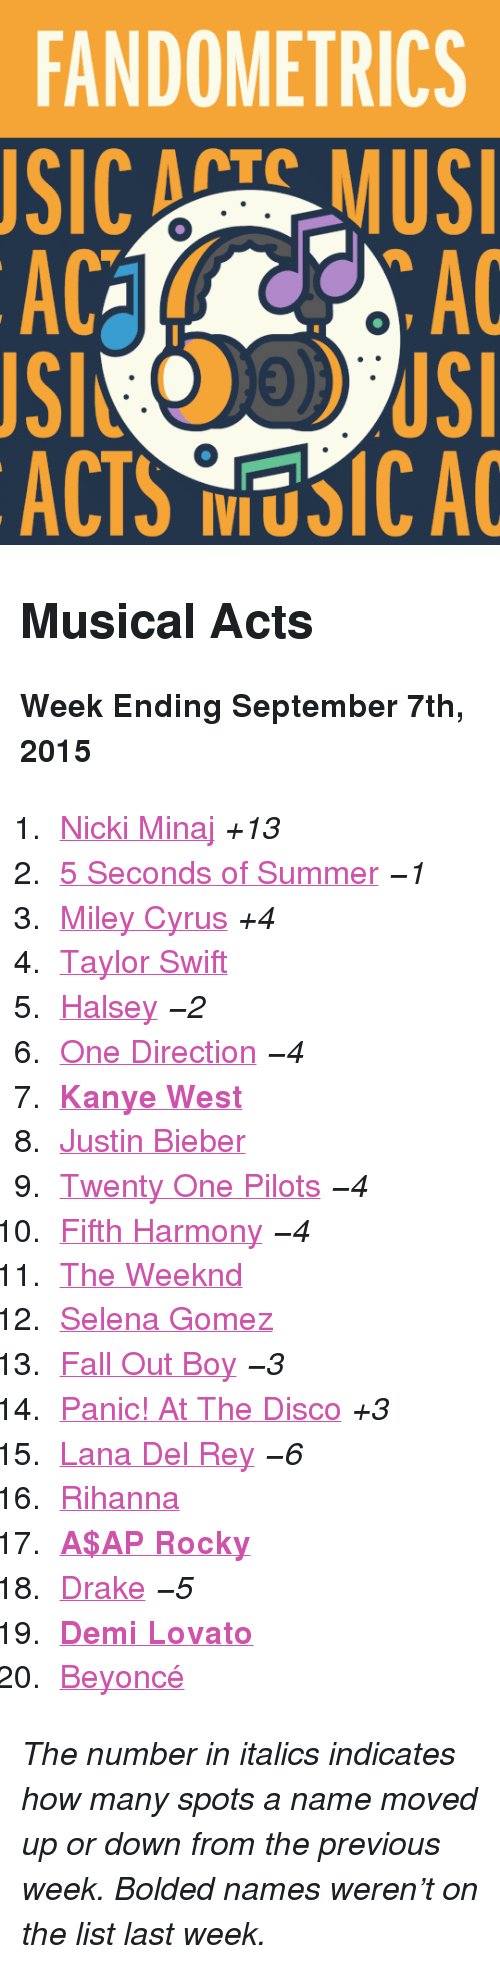 """Search: FANDOMETRICS  SIC ATS MUS  AC  AC  ACTS NUSICA <h2>Musical Acts</h2><p><b>Week Ending September 7th, 2015</b></p><ol><li><a href=""""http://www.tumblr.com/search/nicki%20minaj"""">Nicki Minaj</a><i>+13</i></li>  <li><a href=""""http://www.tumblr.com/search/5sos"""">5 Seconds of Summer</a><i>−1</i></li>  <li><a href=""""http://www.tumblr.com/search/miley%20cyrus"""">Miley Cyrus</a><i>+4</i></li>  <li><a href=""""http://www.tumblr.com/search/taylor%20swift"""">Taylor Swift</a></li>  <li><a href=""""http://www.tumblr.com/search/halsey"""">Halsey</a><i>−2</i></li>  <li><a href=""""http://www.tumblr.com/search/one%20direction"""">One Direction</a><i>−4</i></li>  <li><a href=""""http://www.tumblr.com/search/kanye%20west""""><b>Kanye West</b></a></li>  <li><a href=""""http://www.tumblr.com/search/justin%20bieber"""">Justin Bieber</a></li>  <li><a href=""""http://www.tumblr.com/search/twenty%20one%20pilots"""">Twenty One Pilots</a><i>−4</i></li>  <li><a href=""""http://www.tumblr.com/search/fifth%20harmony"""">Fifth Harmony</a><i>−4</i></li>  <li><a href=""""http://www.tumblr.com/search/the%20weeknd"""">The Weeknd</a></li>  <li><a href=""""http://www.tumblr.com/search/selena%20gomez"""">Selena Gomez</a></li>  <li><a href=""""http://www.tumblr.com/search/fall%20out%20boy"""">Fall Out Boy</a><i>−3</i></li>  <li><a href=""""http://www.tumblr.com/search/panic%20at%20the%20disco"""">Panic! At The Disco</a><i>+3</i></li>  <li><a href=""""http://www.tumblr.com/search/lana%20del%20rey"""">Lana Del Rey</a><i>−6</i></li>  <li><a href=""""http://www.tumblr.com/search/rihanna"""">Rihanna</a></li>  <li><a href=""""http://www.tumblr.com/search/asap%20rocky""""><b>A$AP Rocky</b></a></li>  <li><a href=""""http://www.tumblr.com/search/drake"""">Drake</a><i>−5</i></li>  <li><a href=""""http://www.tumblr.com/search/demi%20lovato""""><b>Demi Lovato</b></a></li>  <li><a href=""""http://www.tumblr.com/search/beyonce"""">Beyoncé</a></li></ol><p><i>The number in italics indicates how many spots a name moved up or down from the previous week. Bolded names weren't on the list last week.</i></p>"""